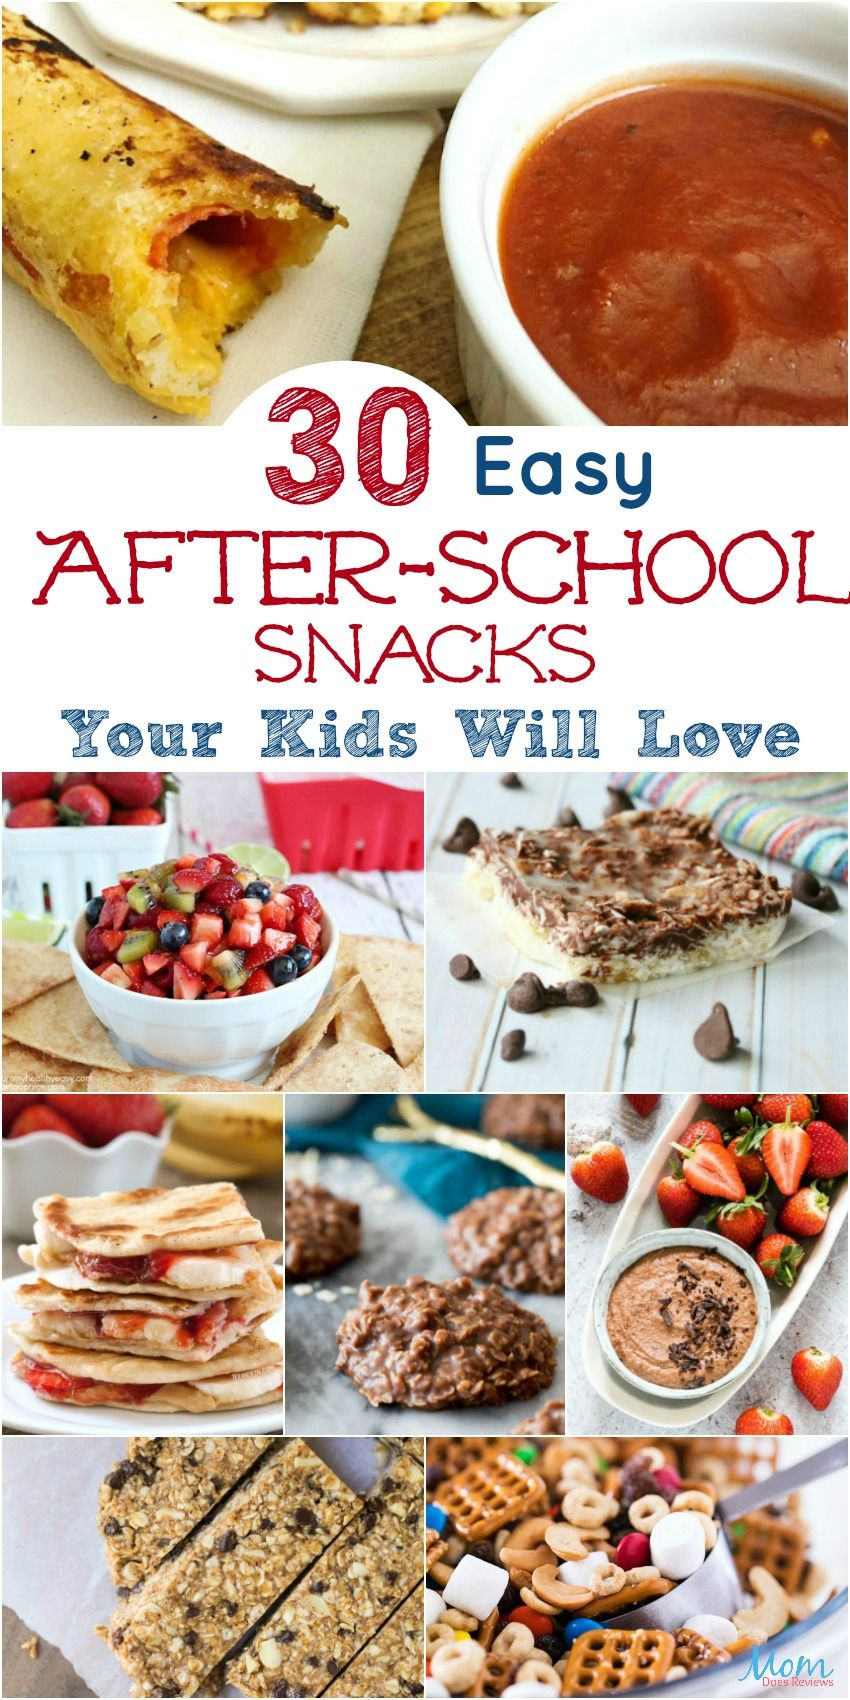 30 Easy After-School Snacks Your Kids Will Love #Back2School18 images